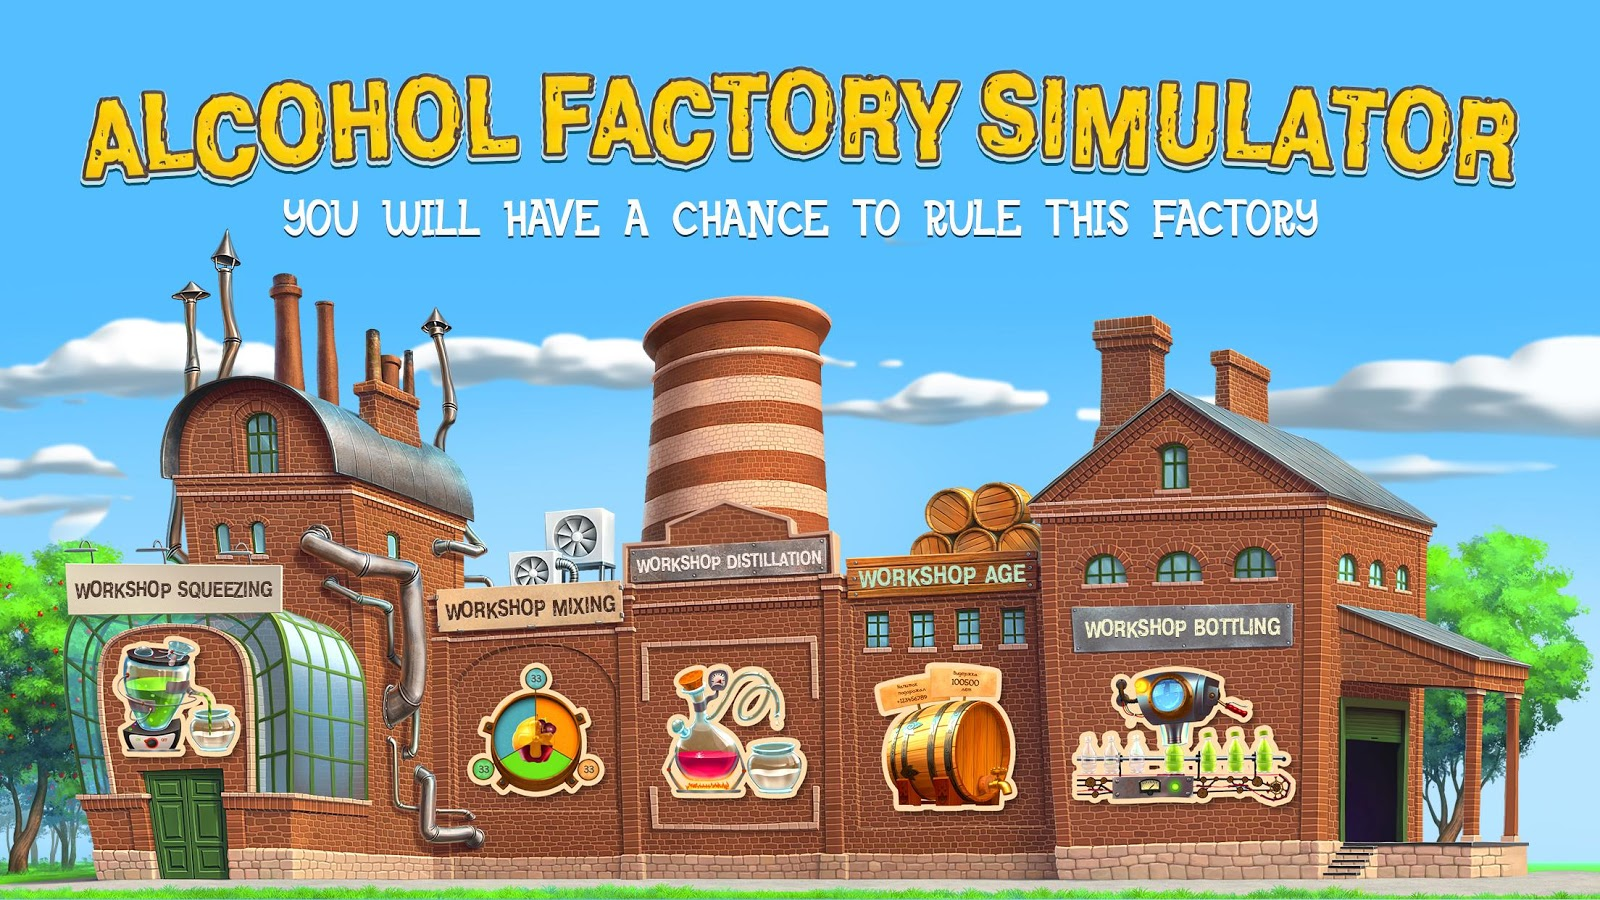 Alcohol Factory Simulator Screenshot 10